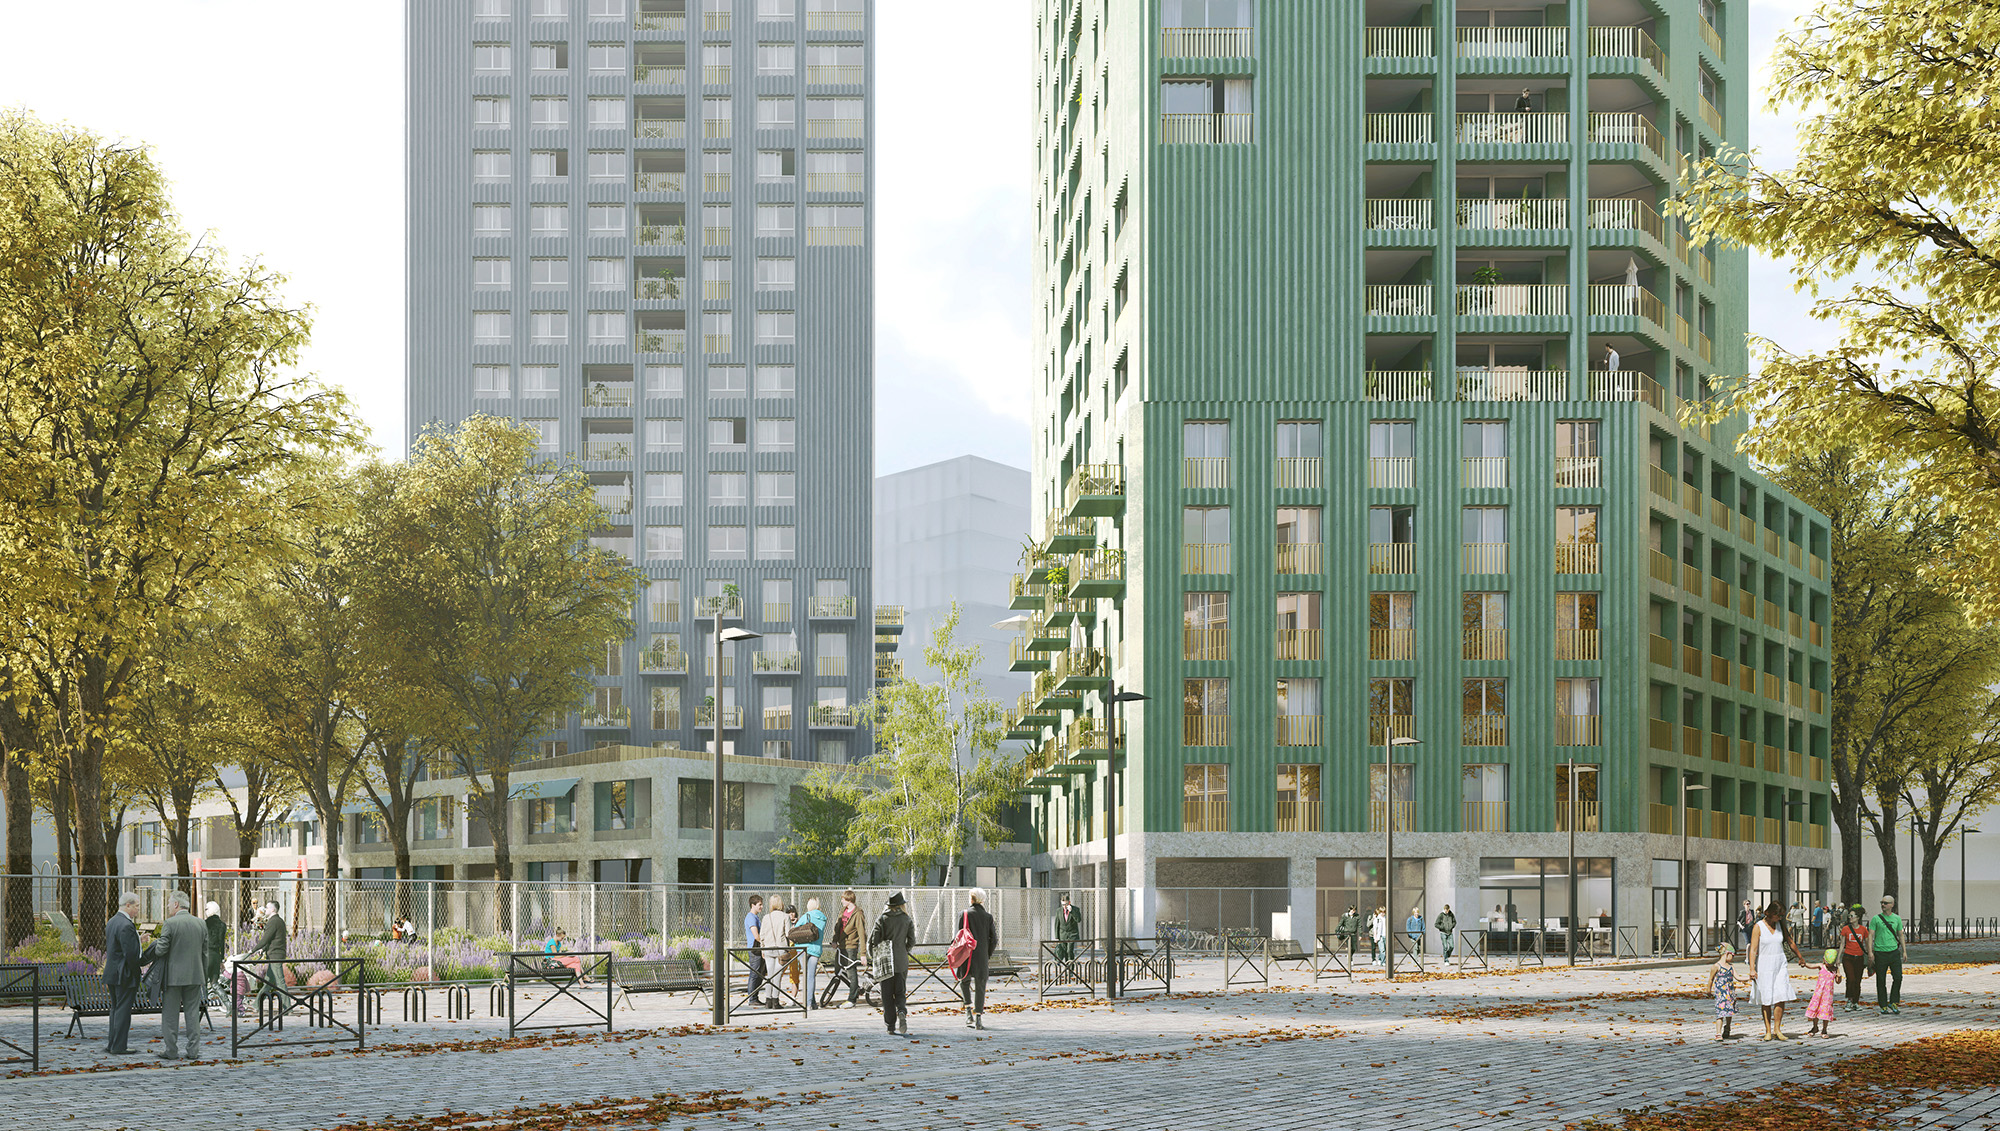 COLLECTIVE HOUSING UNITS - CHAPELLE INTERNATIONAL